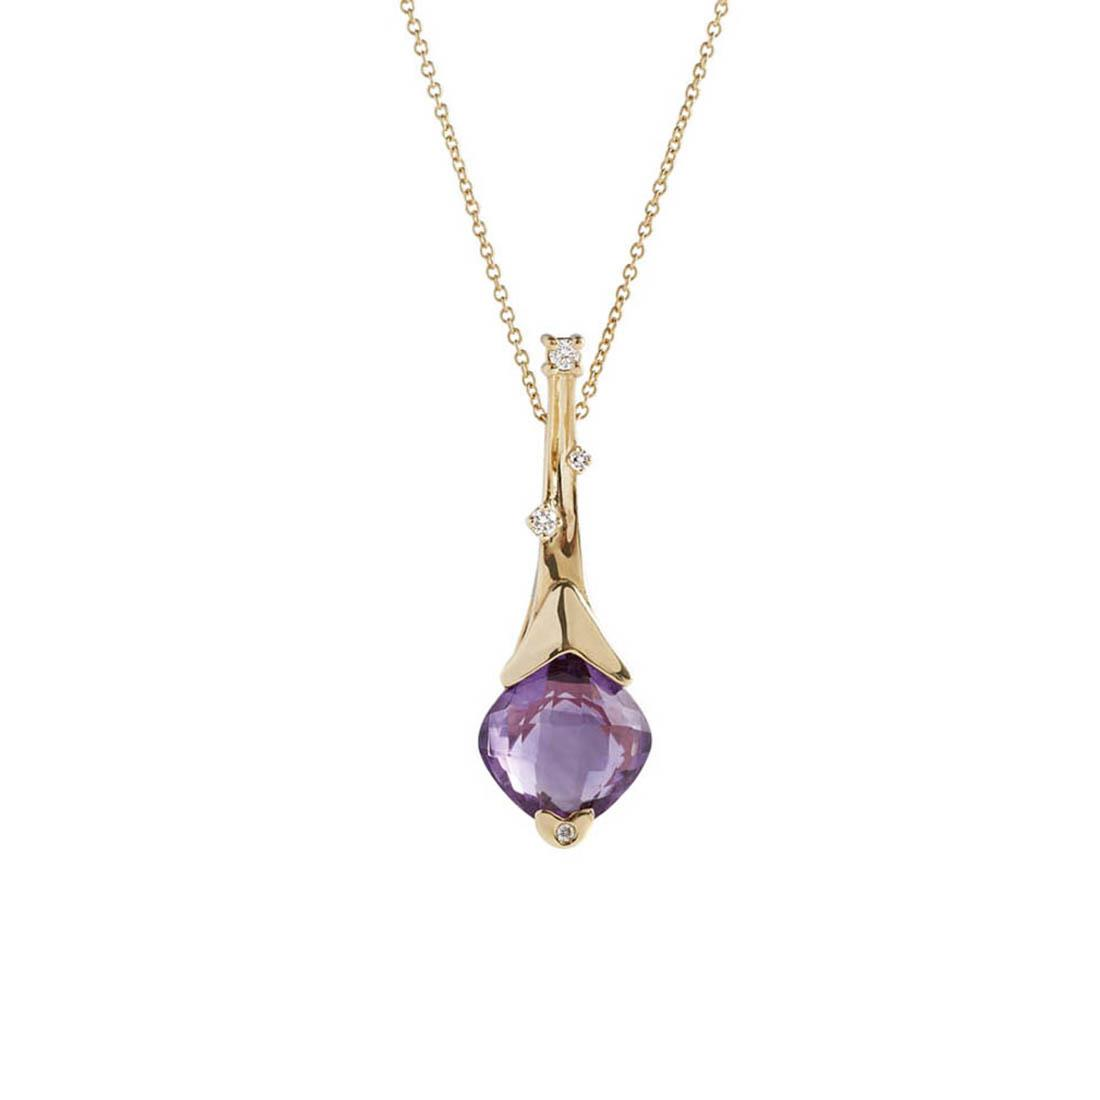 Yellow gold pendant with 3.80 ct square briolette cut amethyst and 0.07 ct diamonds - 42 cm lenght.